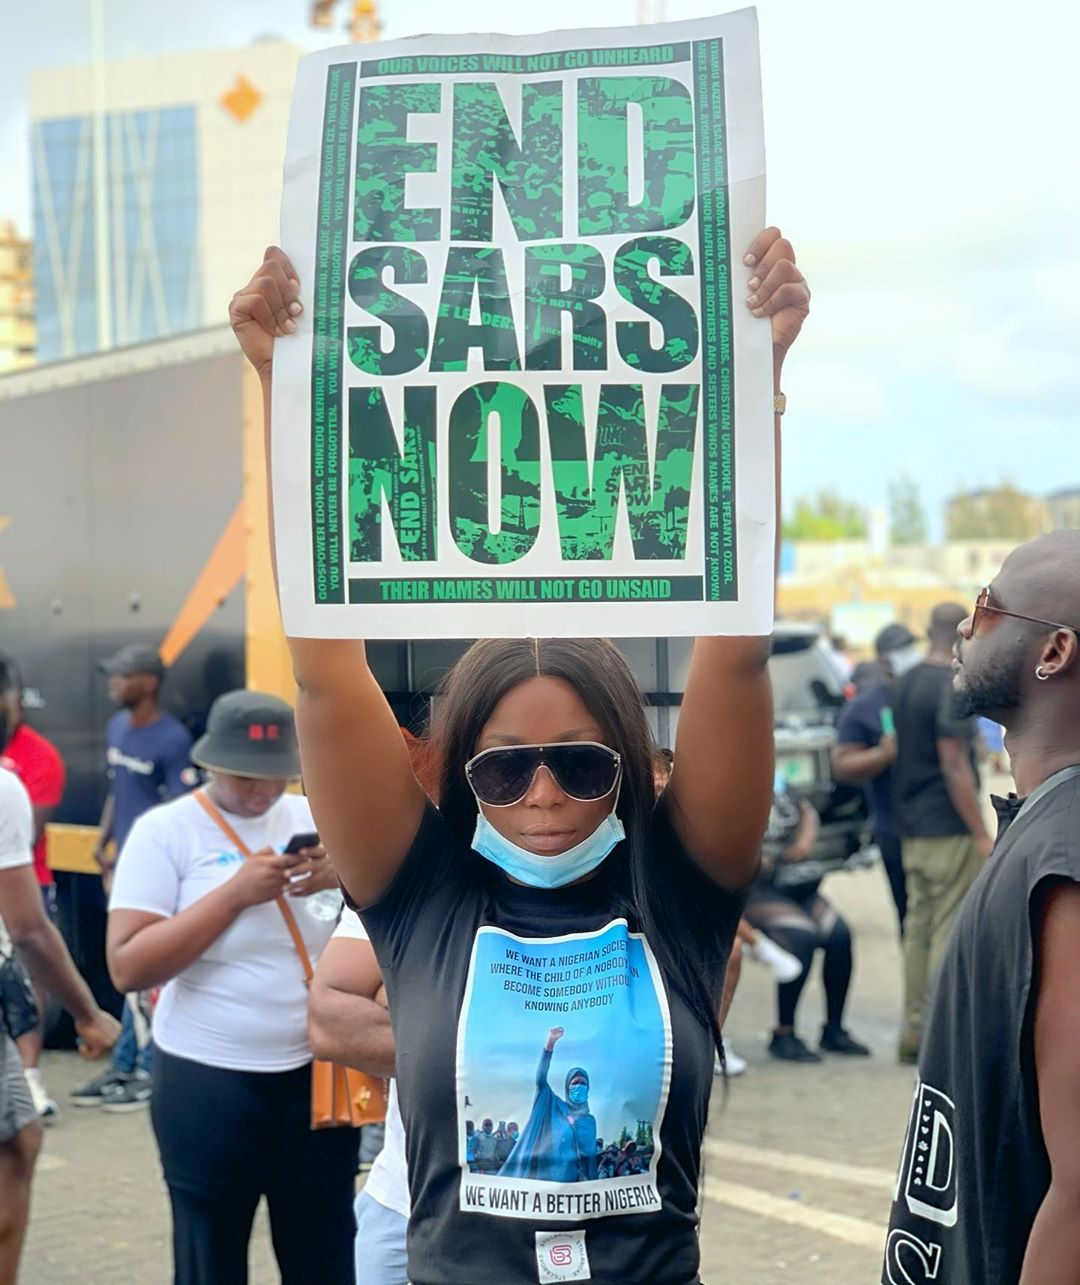 END SARS IN ABUJA